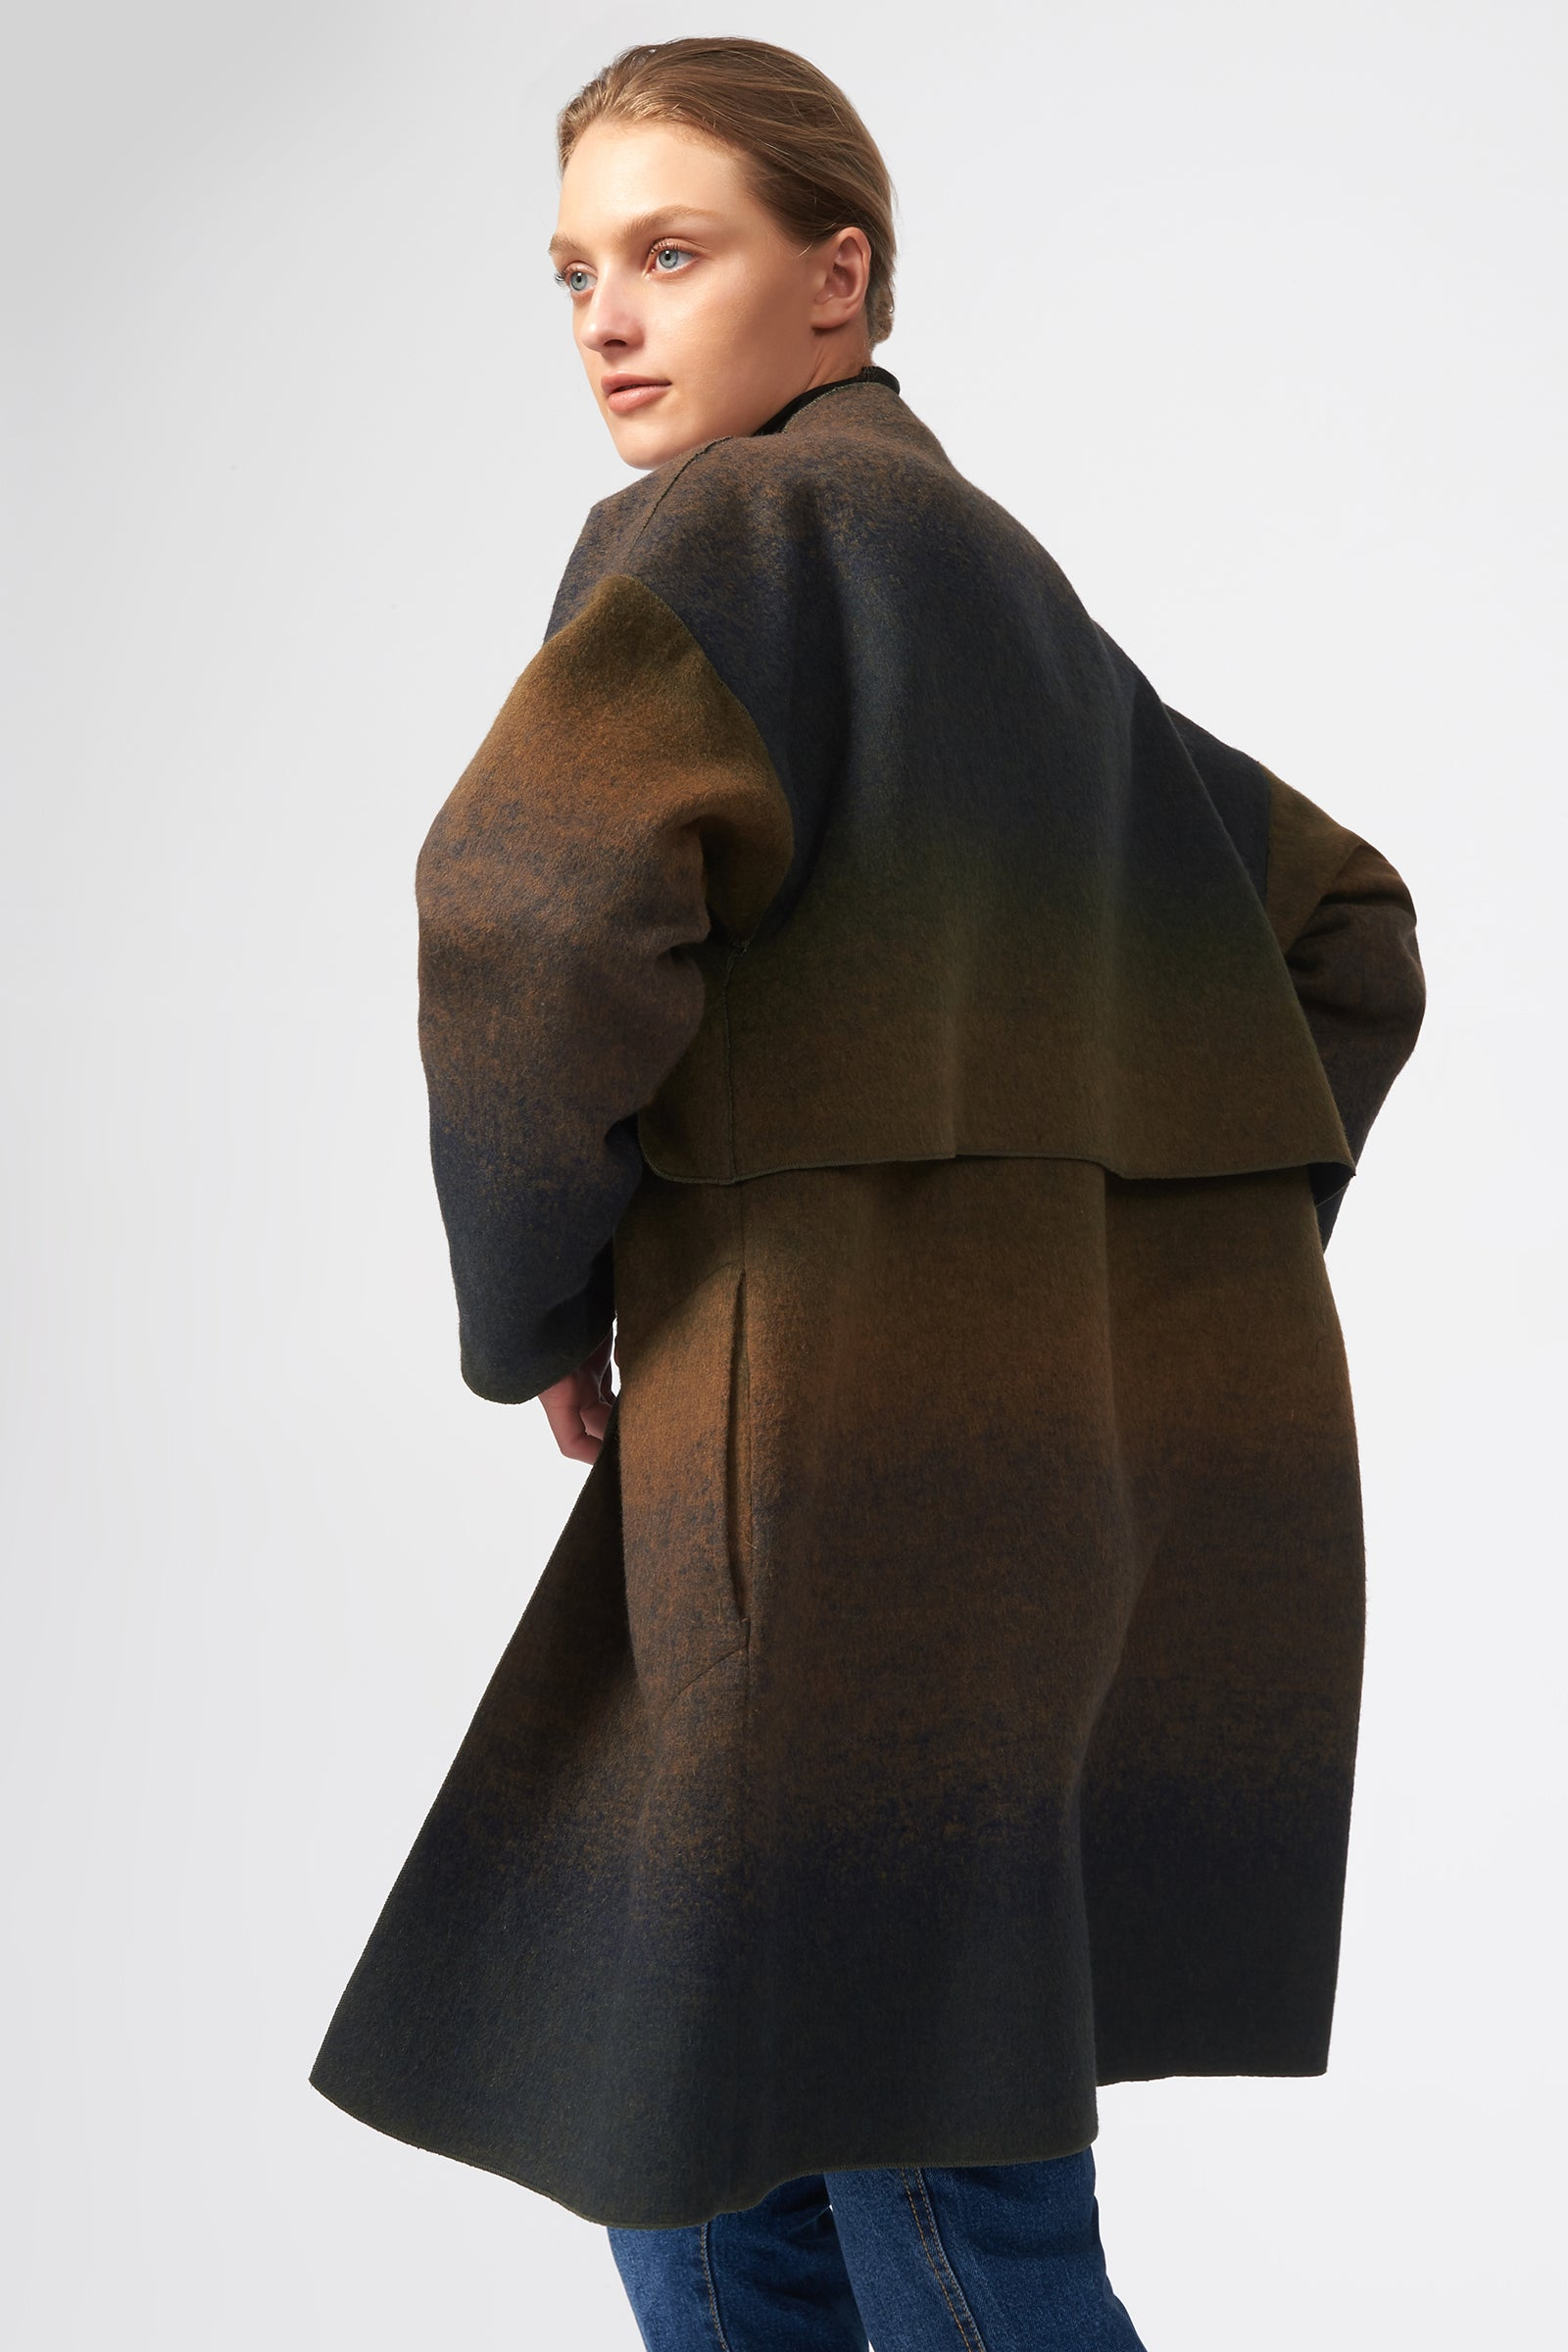 Kal Rieman Cape Kimono Coat in Italian Ombre on Model Back View